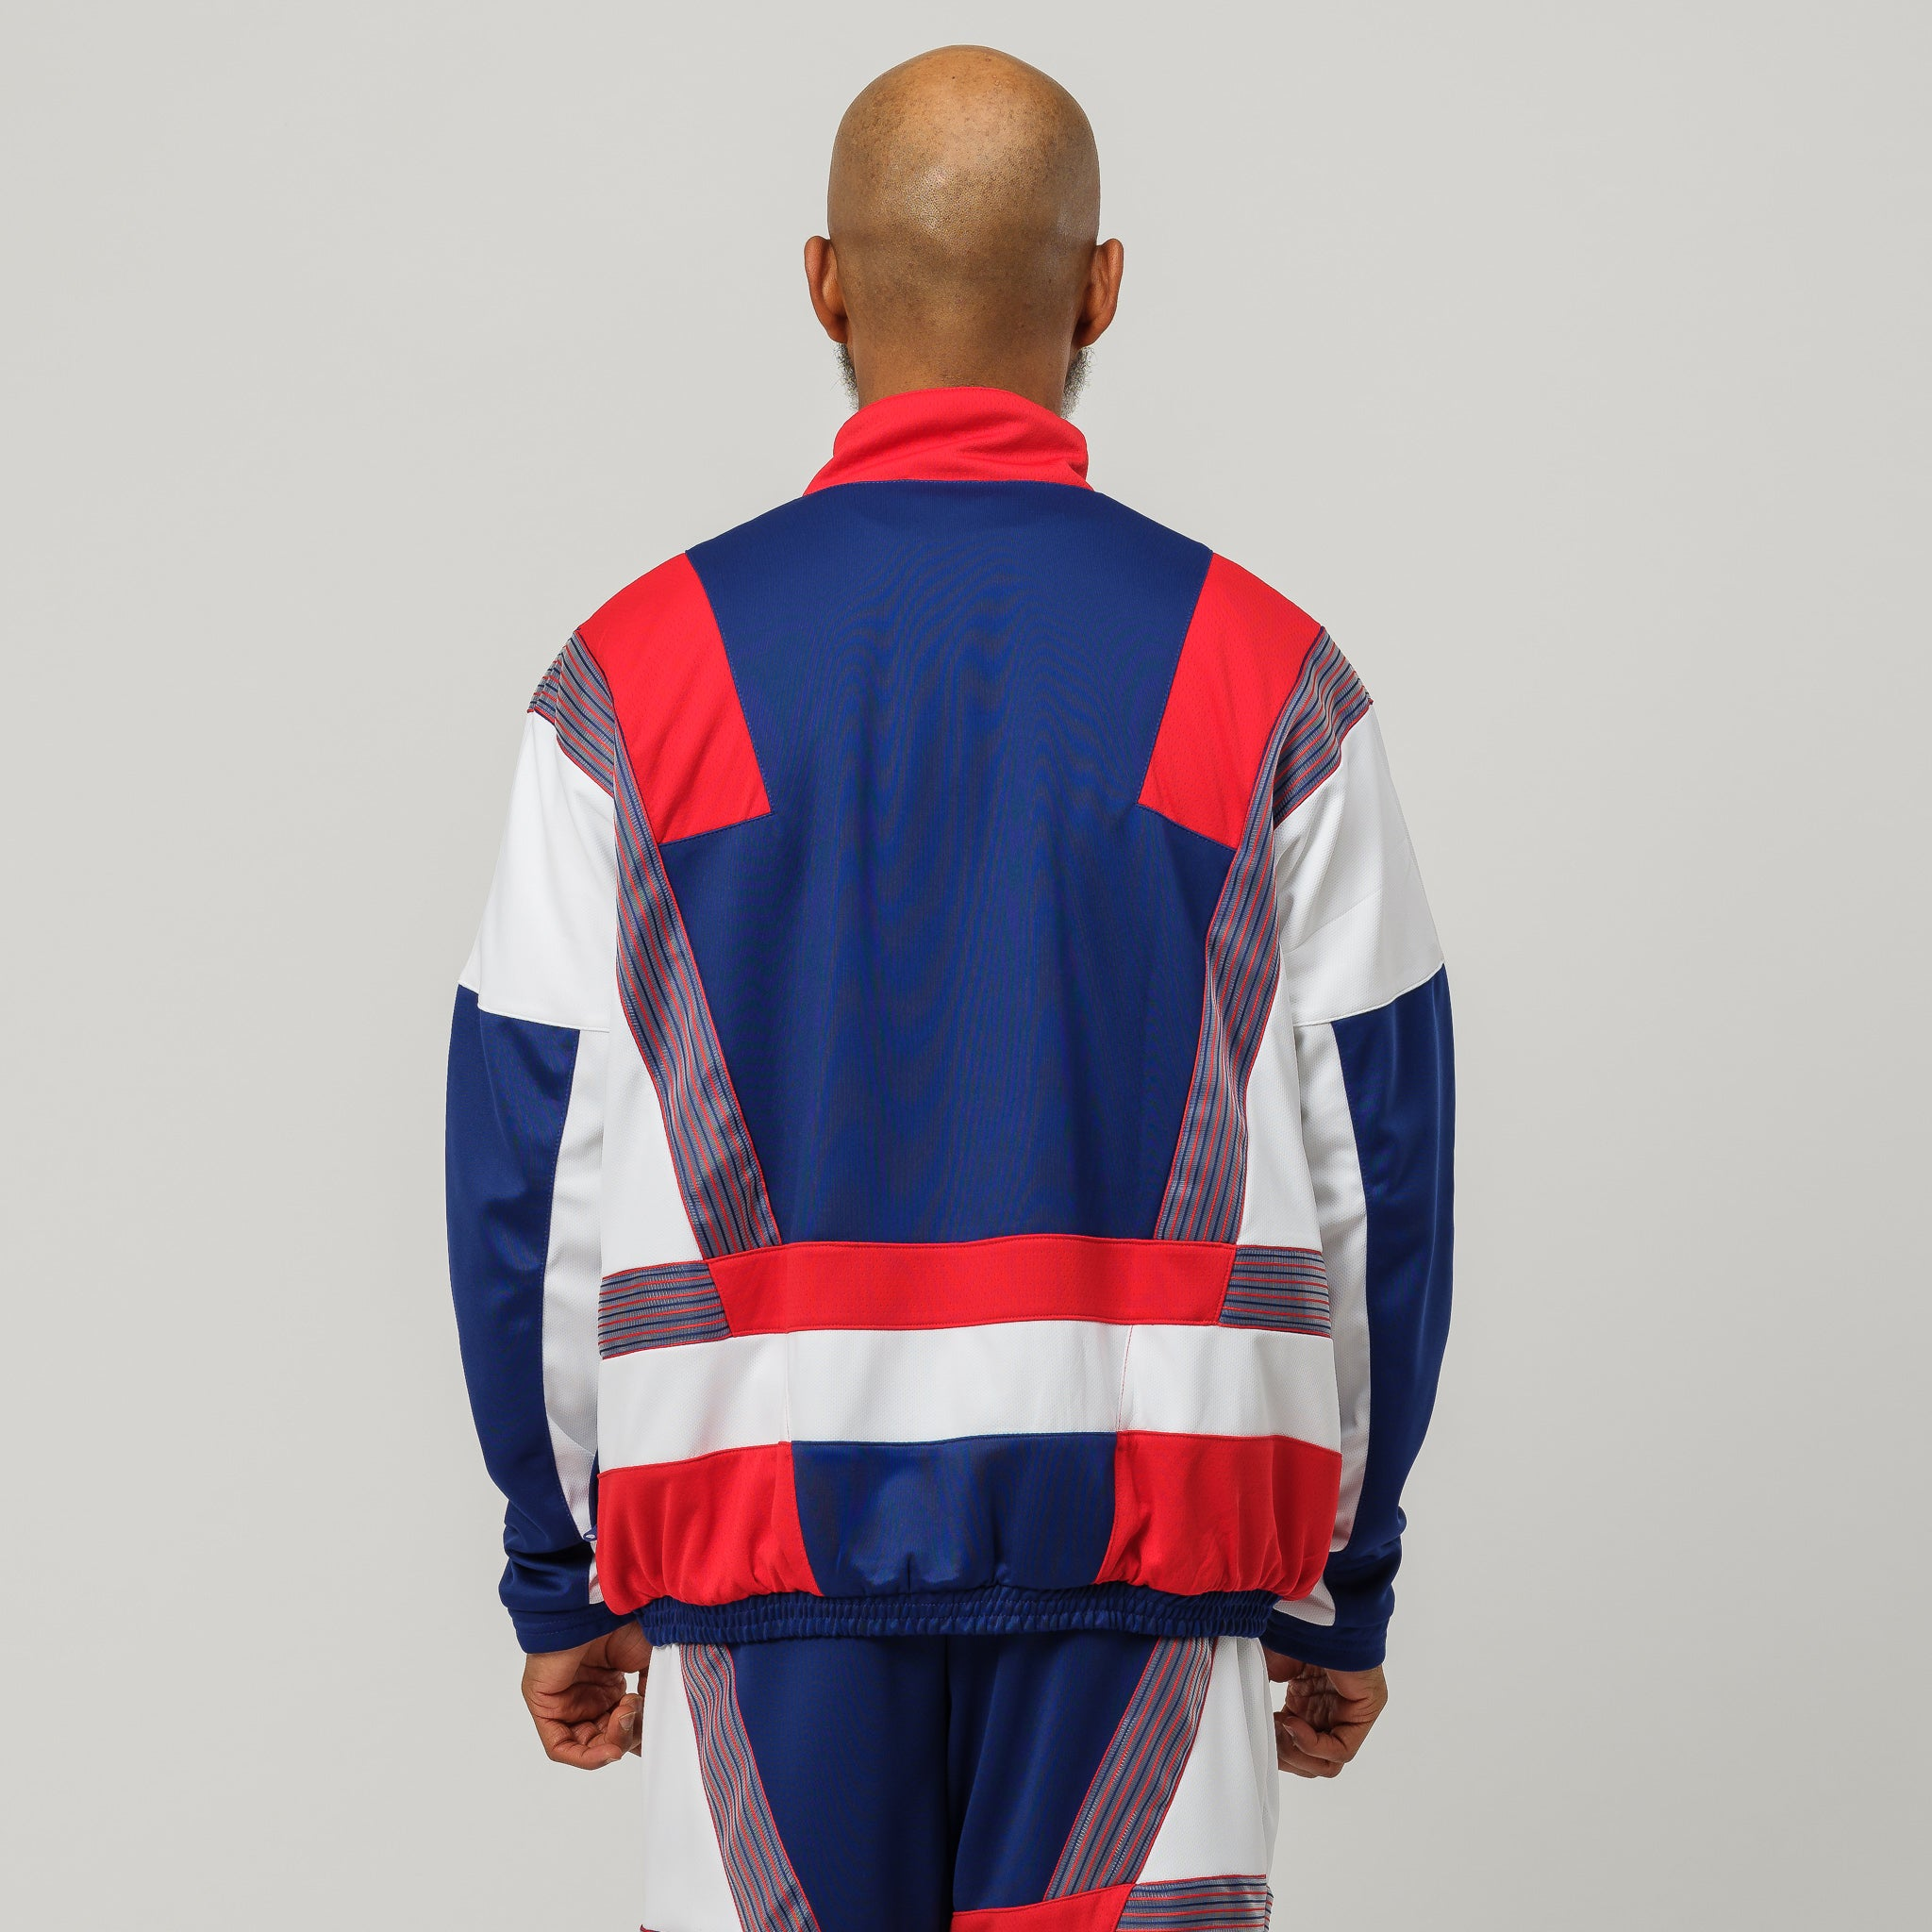 x CLOT Track Suit in Red/White/Blue